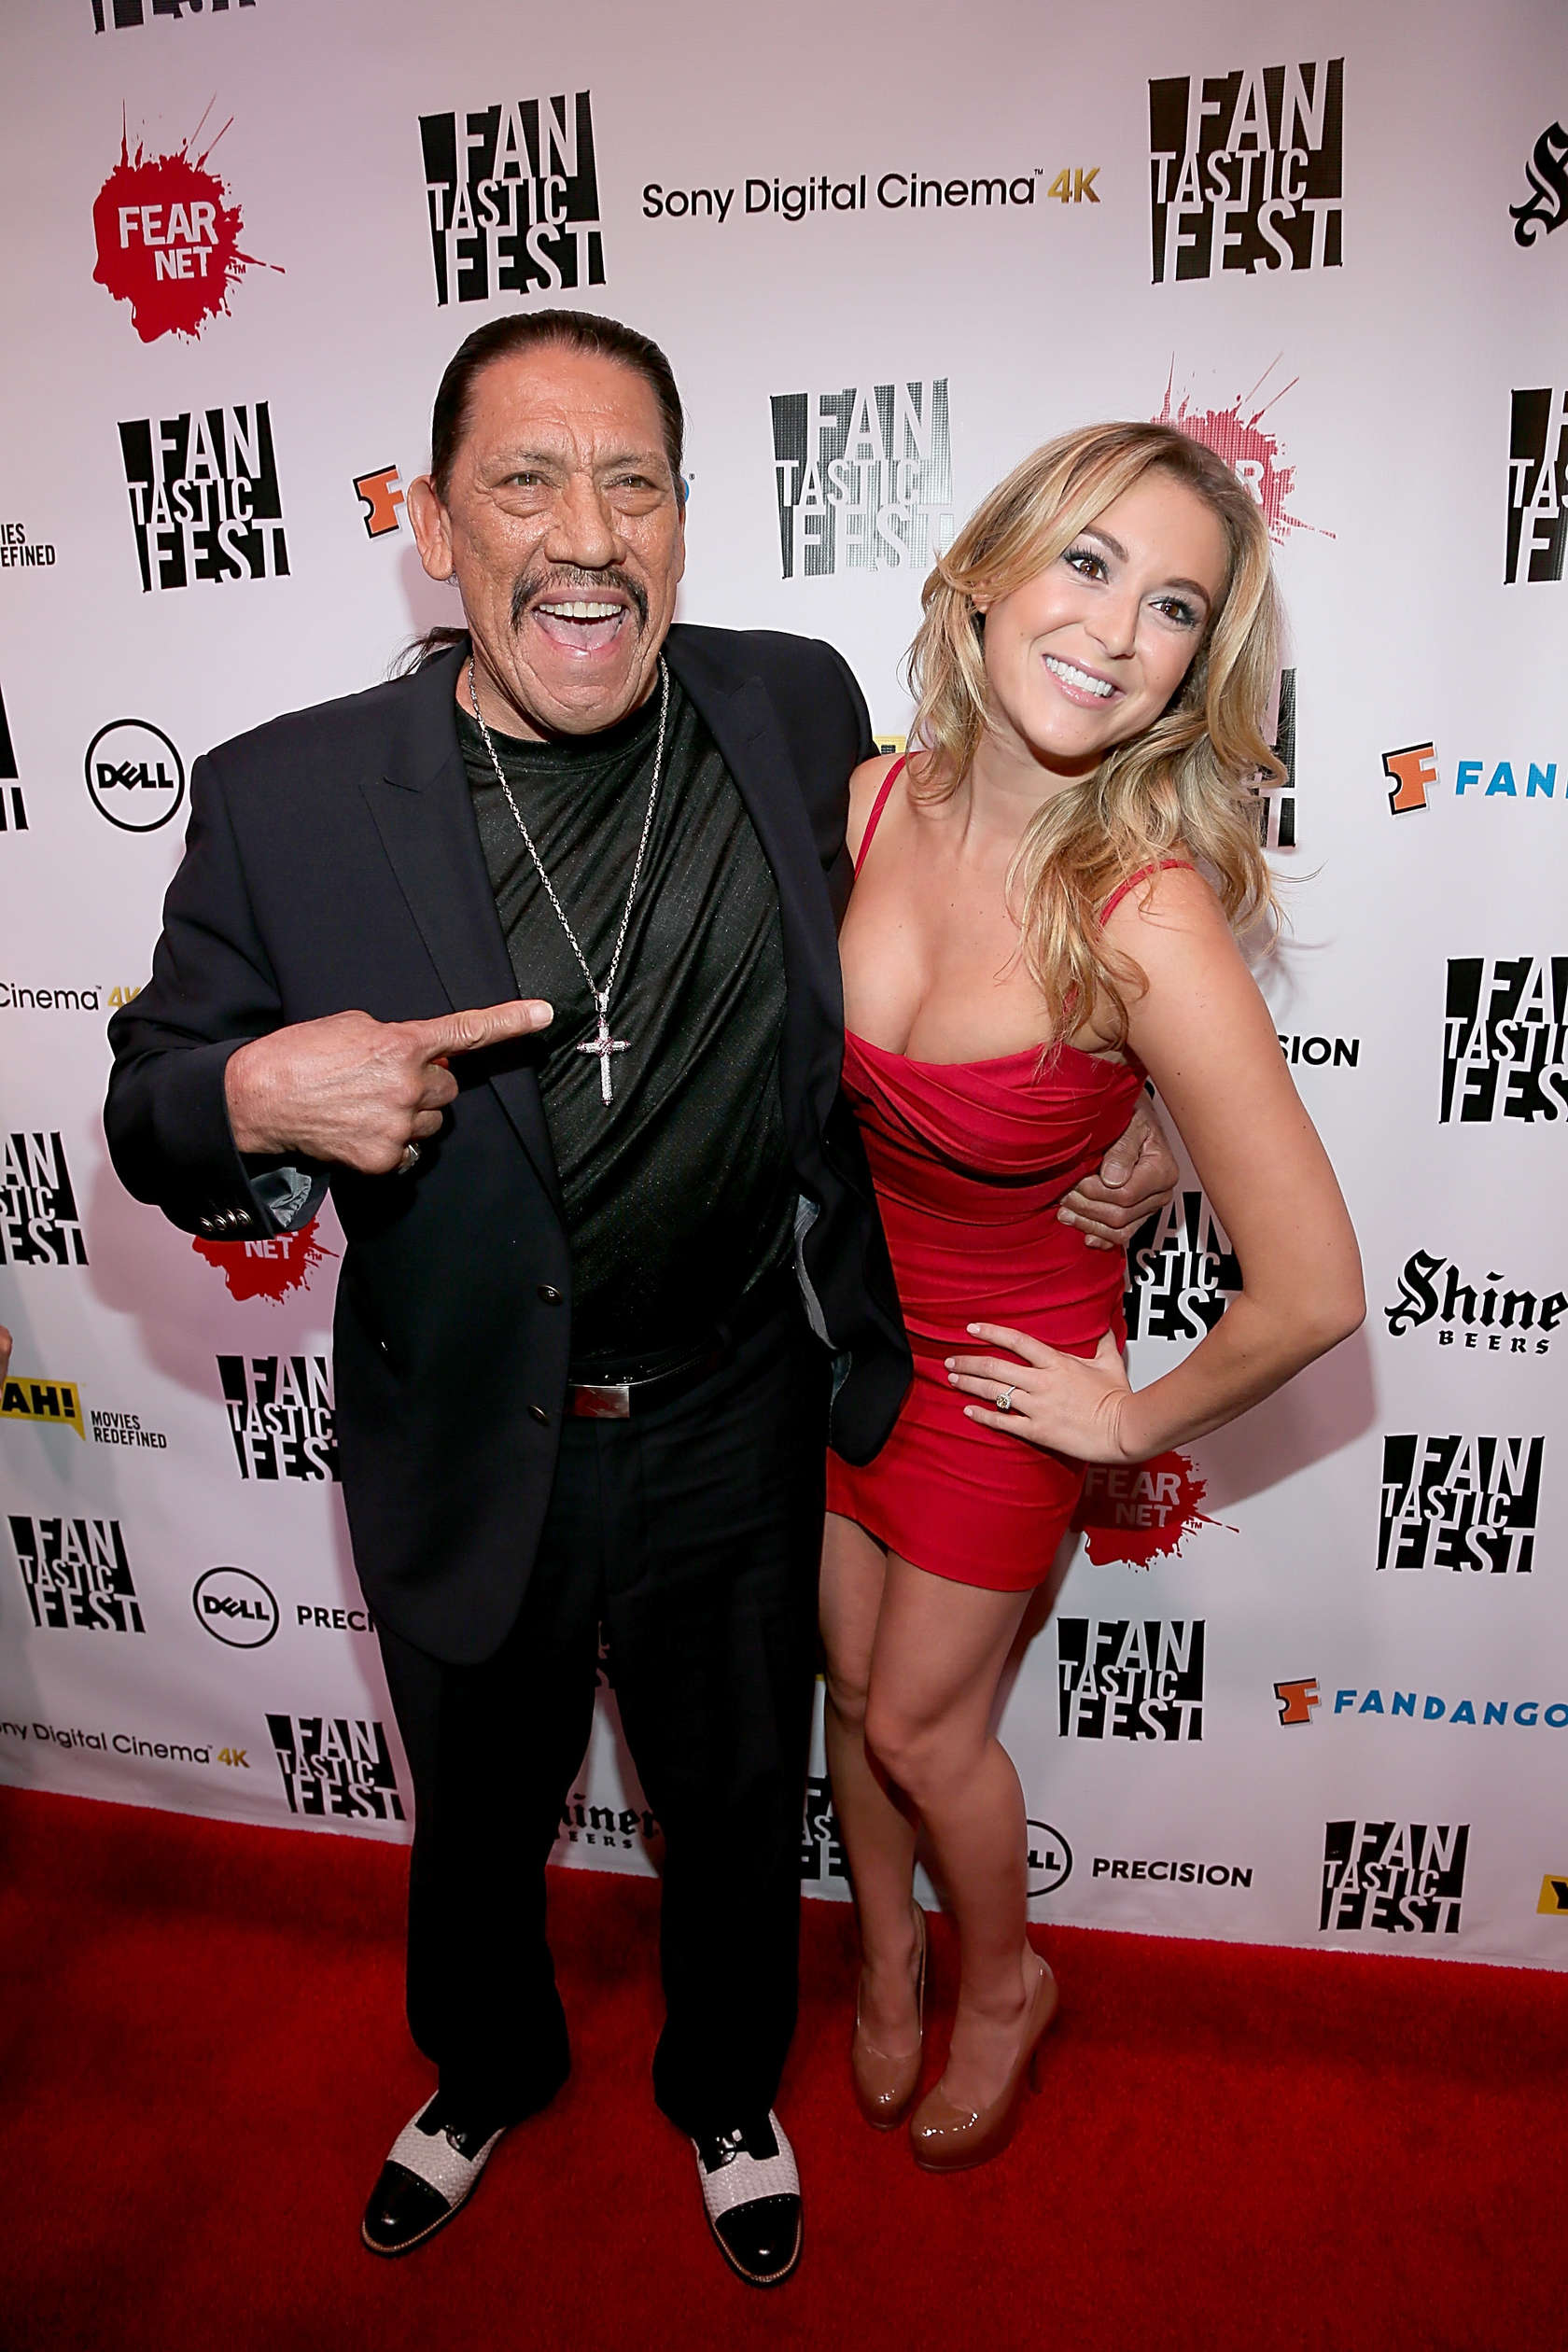 Just saw machete kills and bah gawd alexa vega hhnnngggg ign boards i gladly be tunnel buddies with ol crater face altavistaventures Gallery